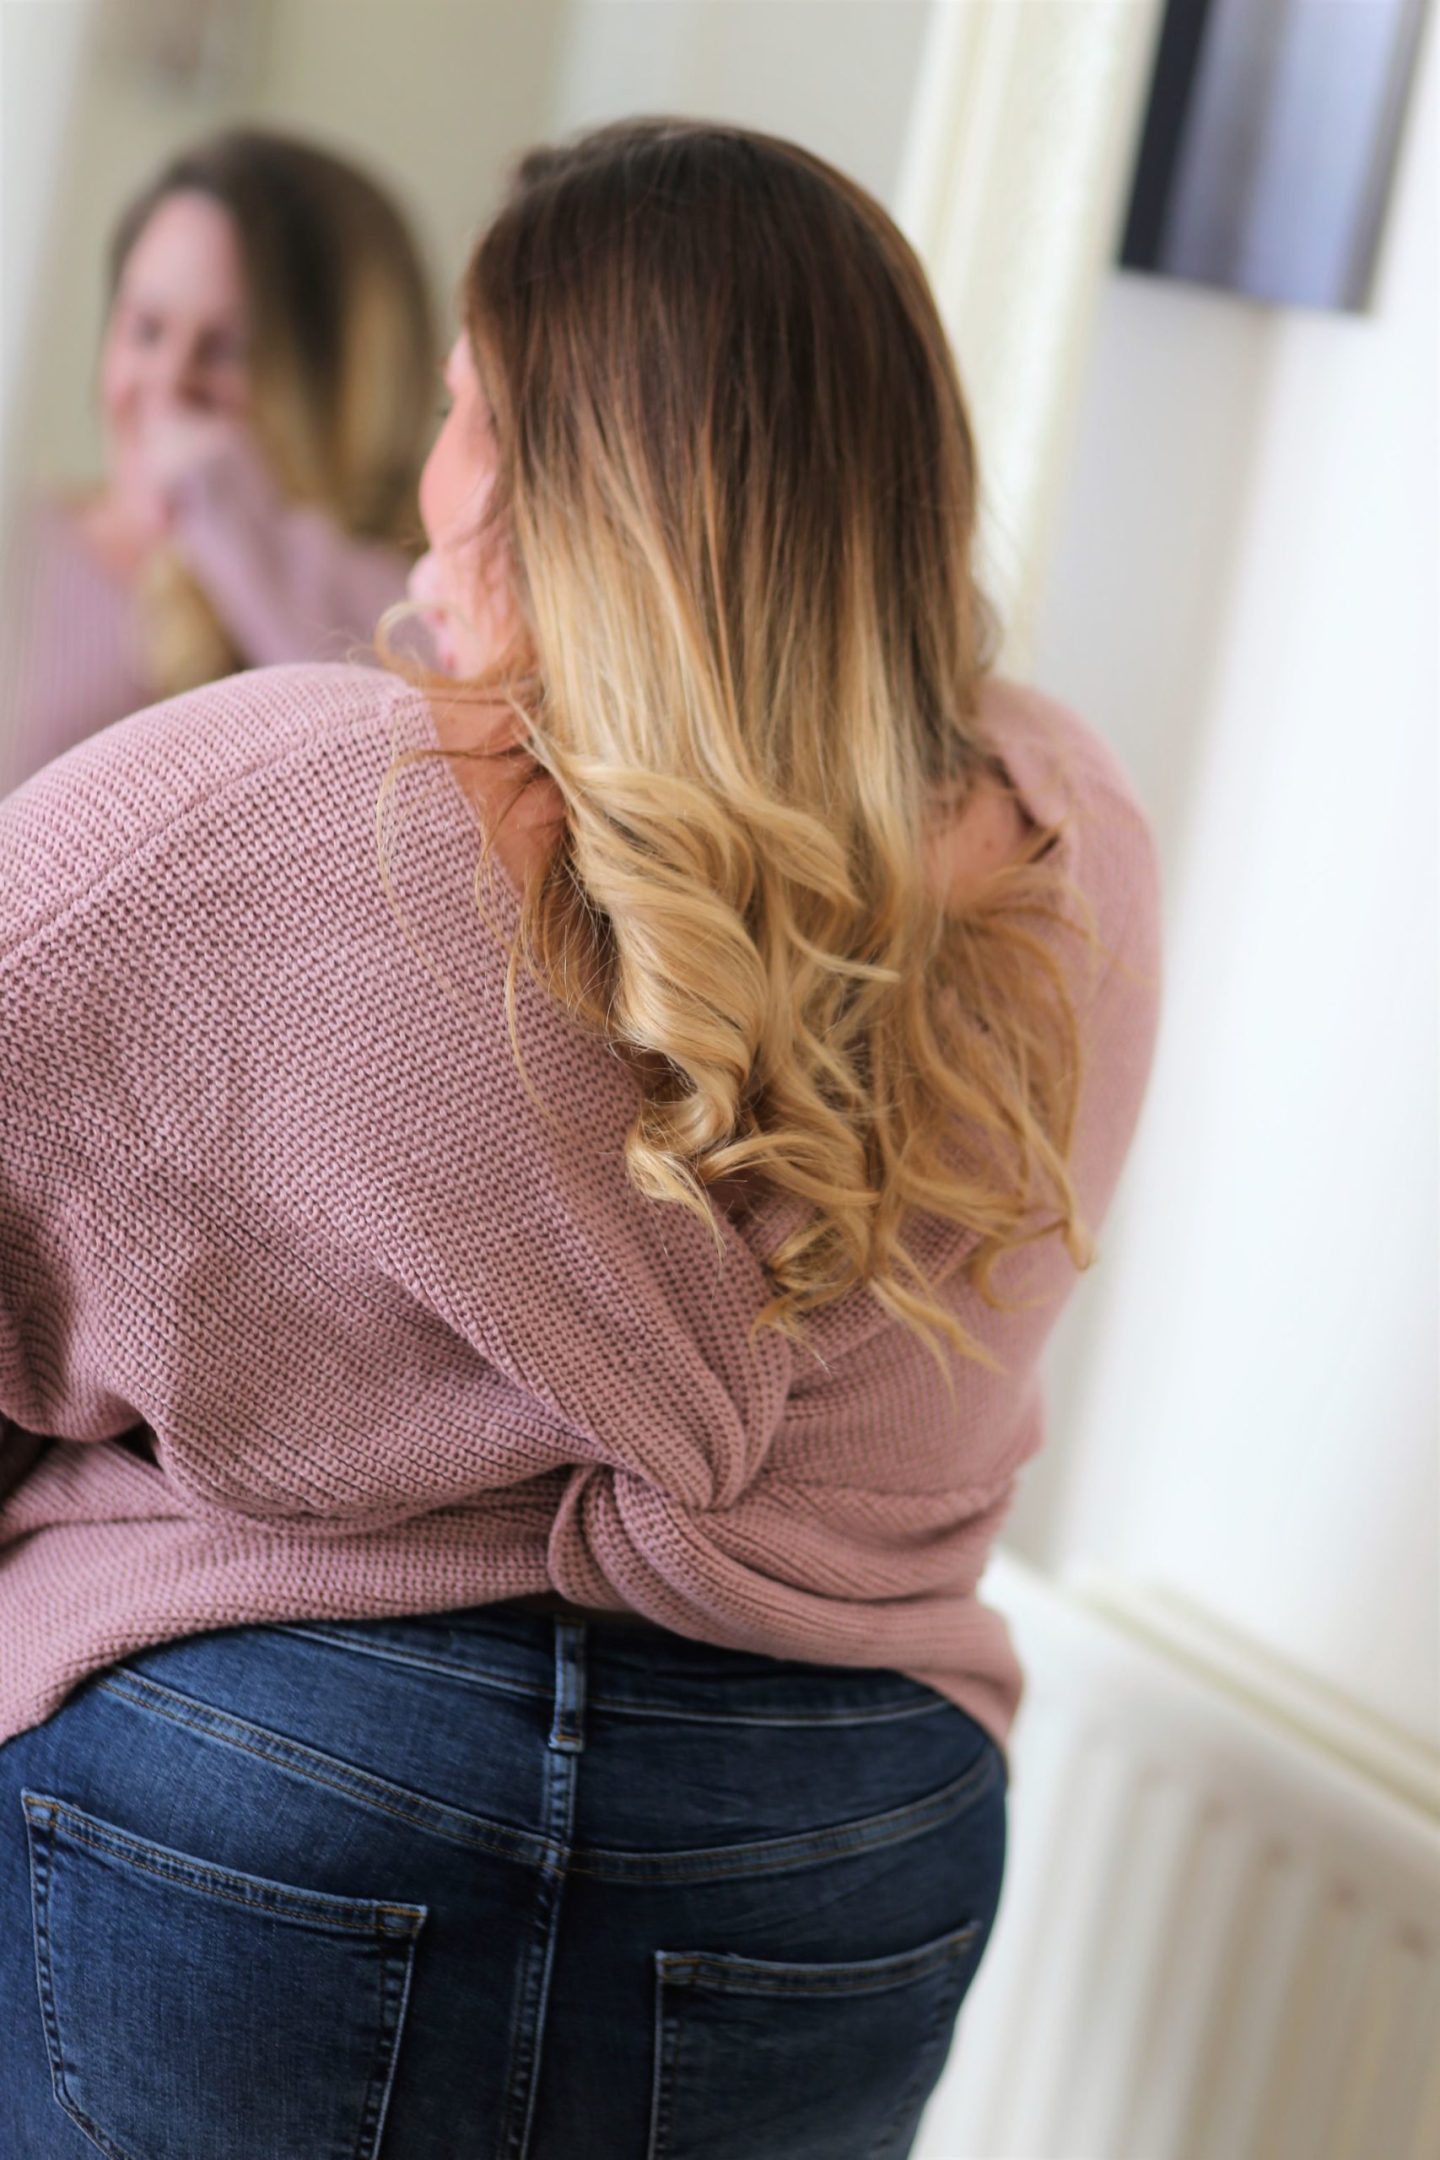 IMG 7045 scaled - Hairstyle Ideas For Christmas 2019